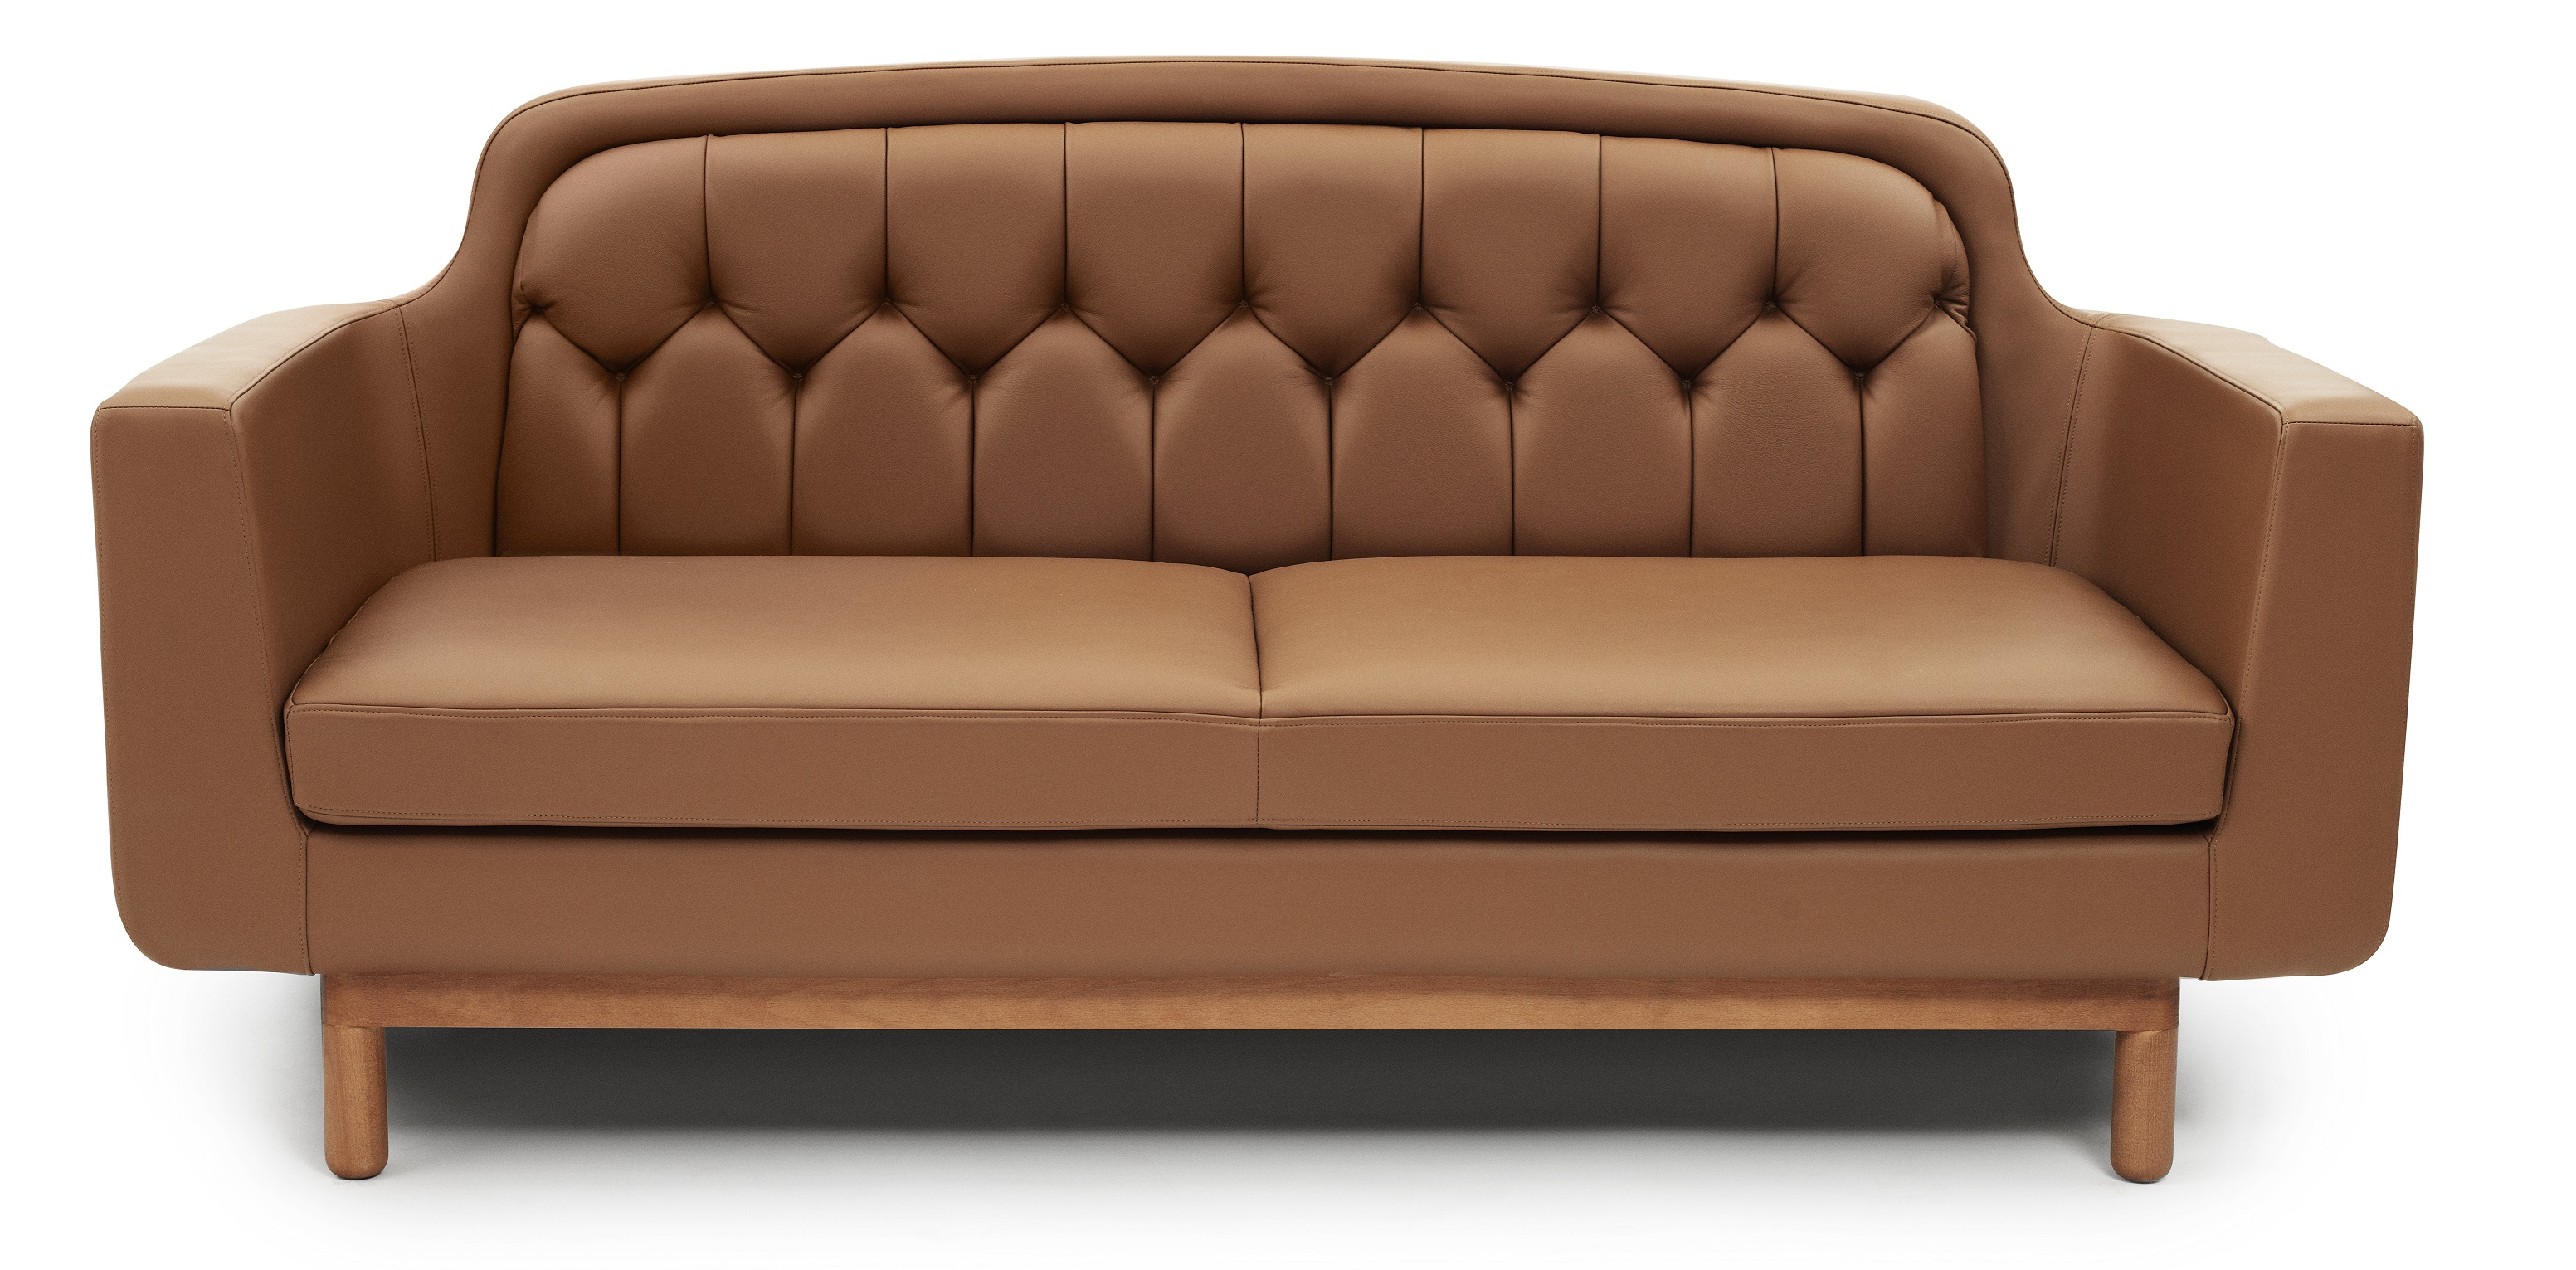 Onkel leather sofa 2-sits